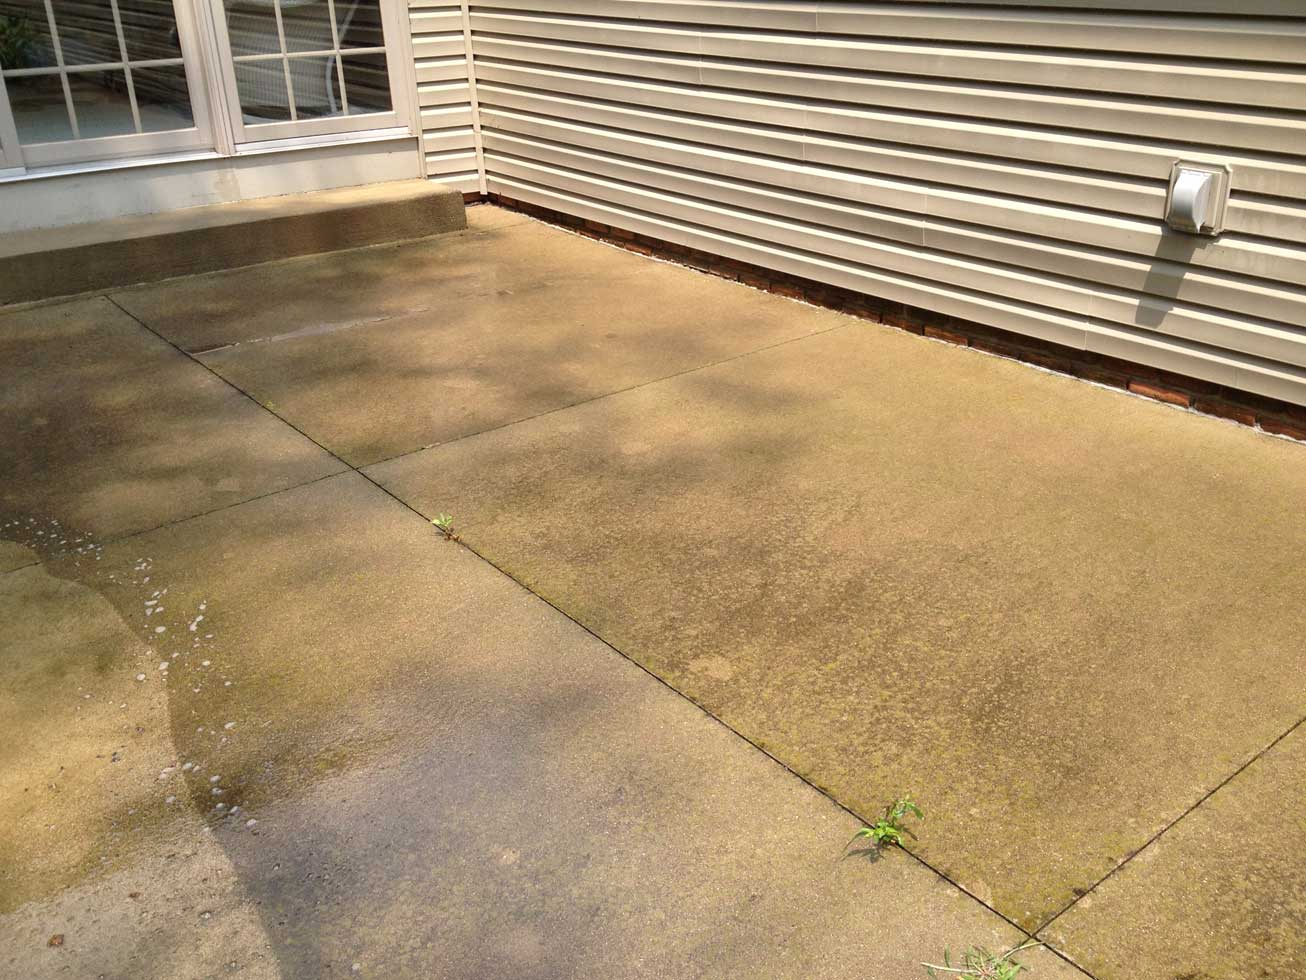 Concrete patio after all cleanall clean for What to clean concrete with